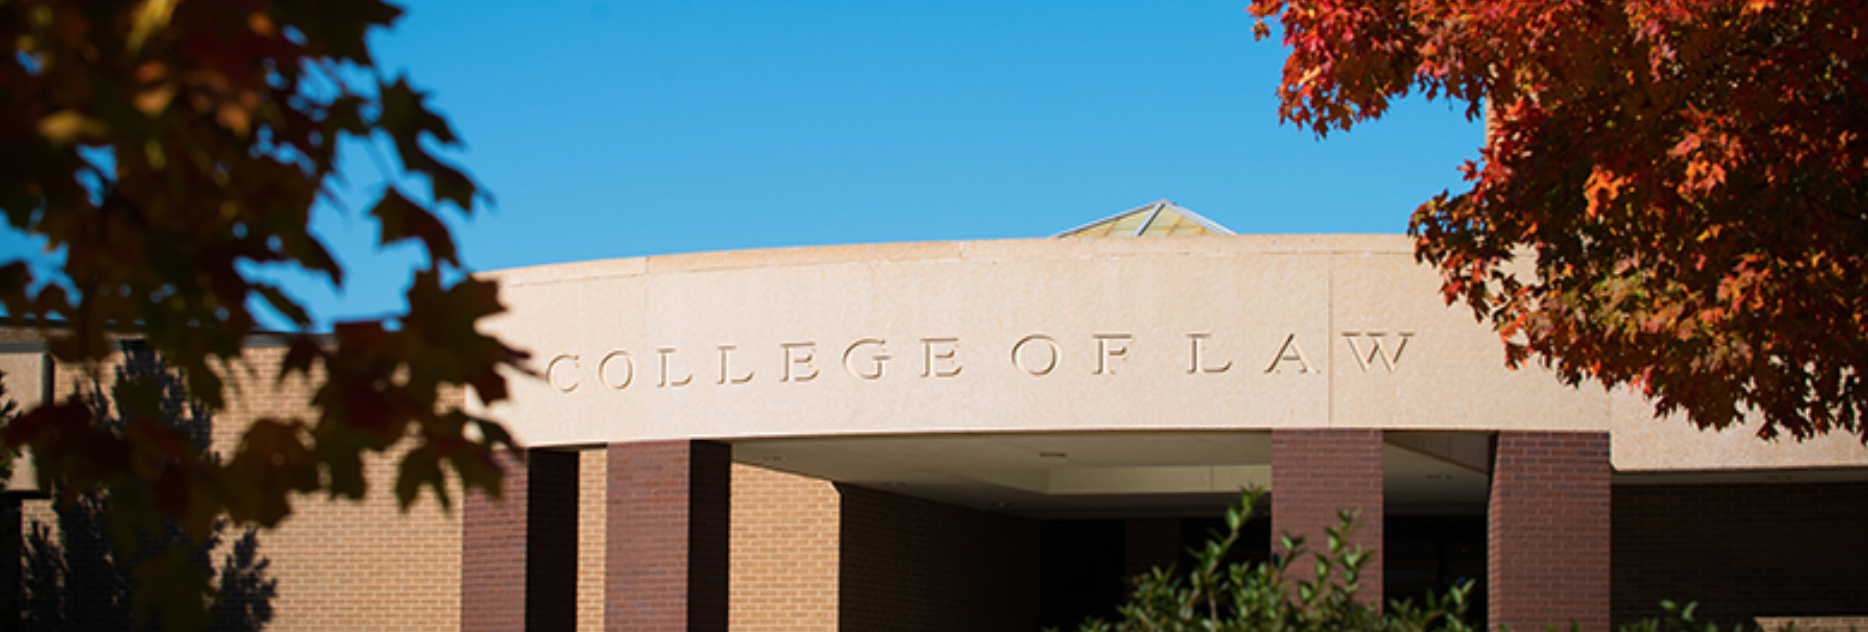 The University of Nebraska College of Law is seeking candidates for the position of Graduate Assistant for the Space, Cyber, and Telecommunications Law Program. Required materials for application are due Monday, August 5 for consideration.